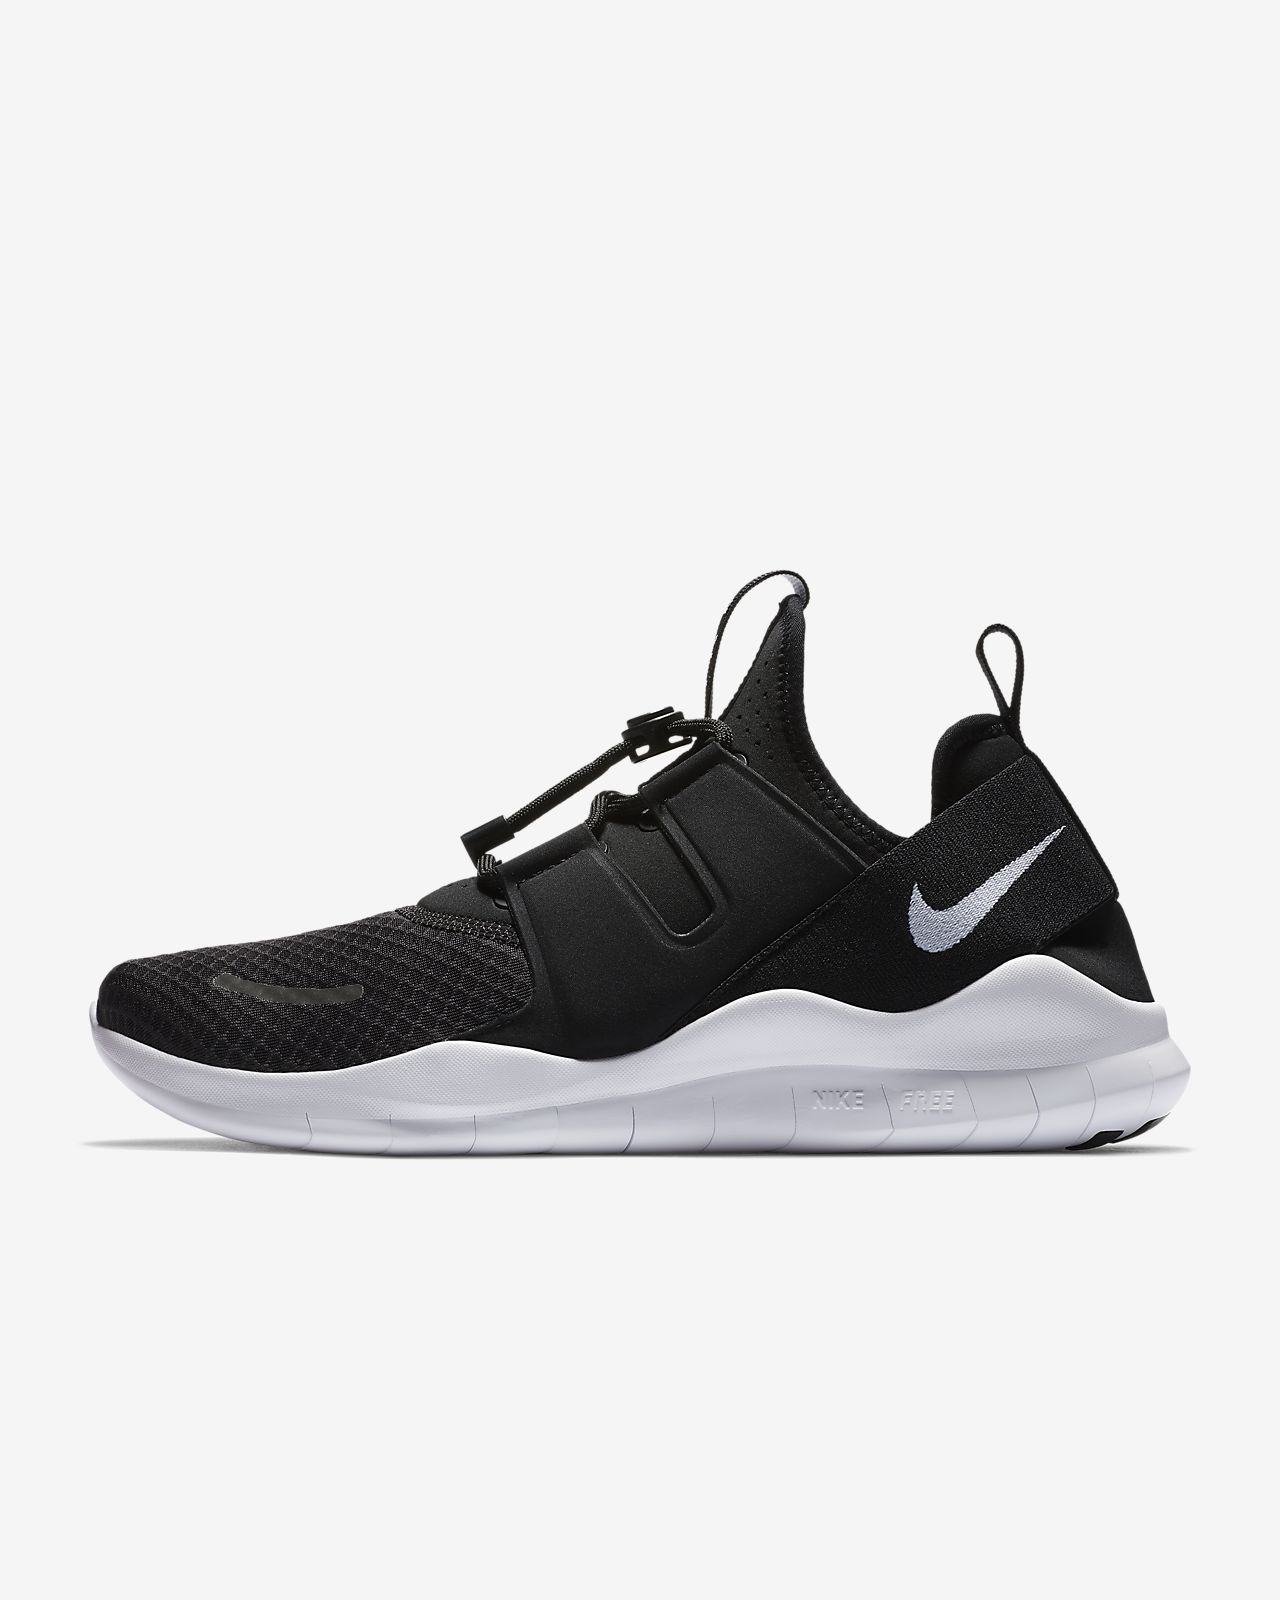 7db9bb92744 Nike Free RN Commuter 2018 Men s Running Shoe. Nike.com